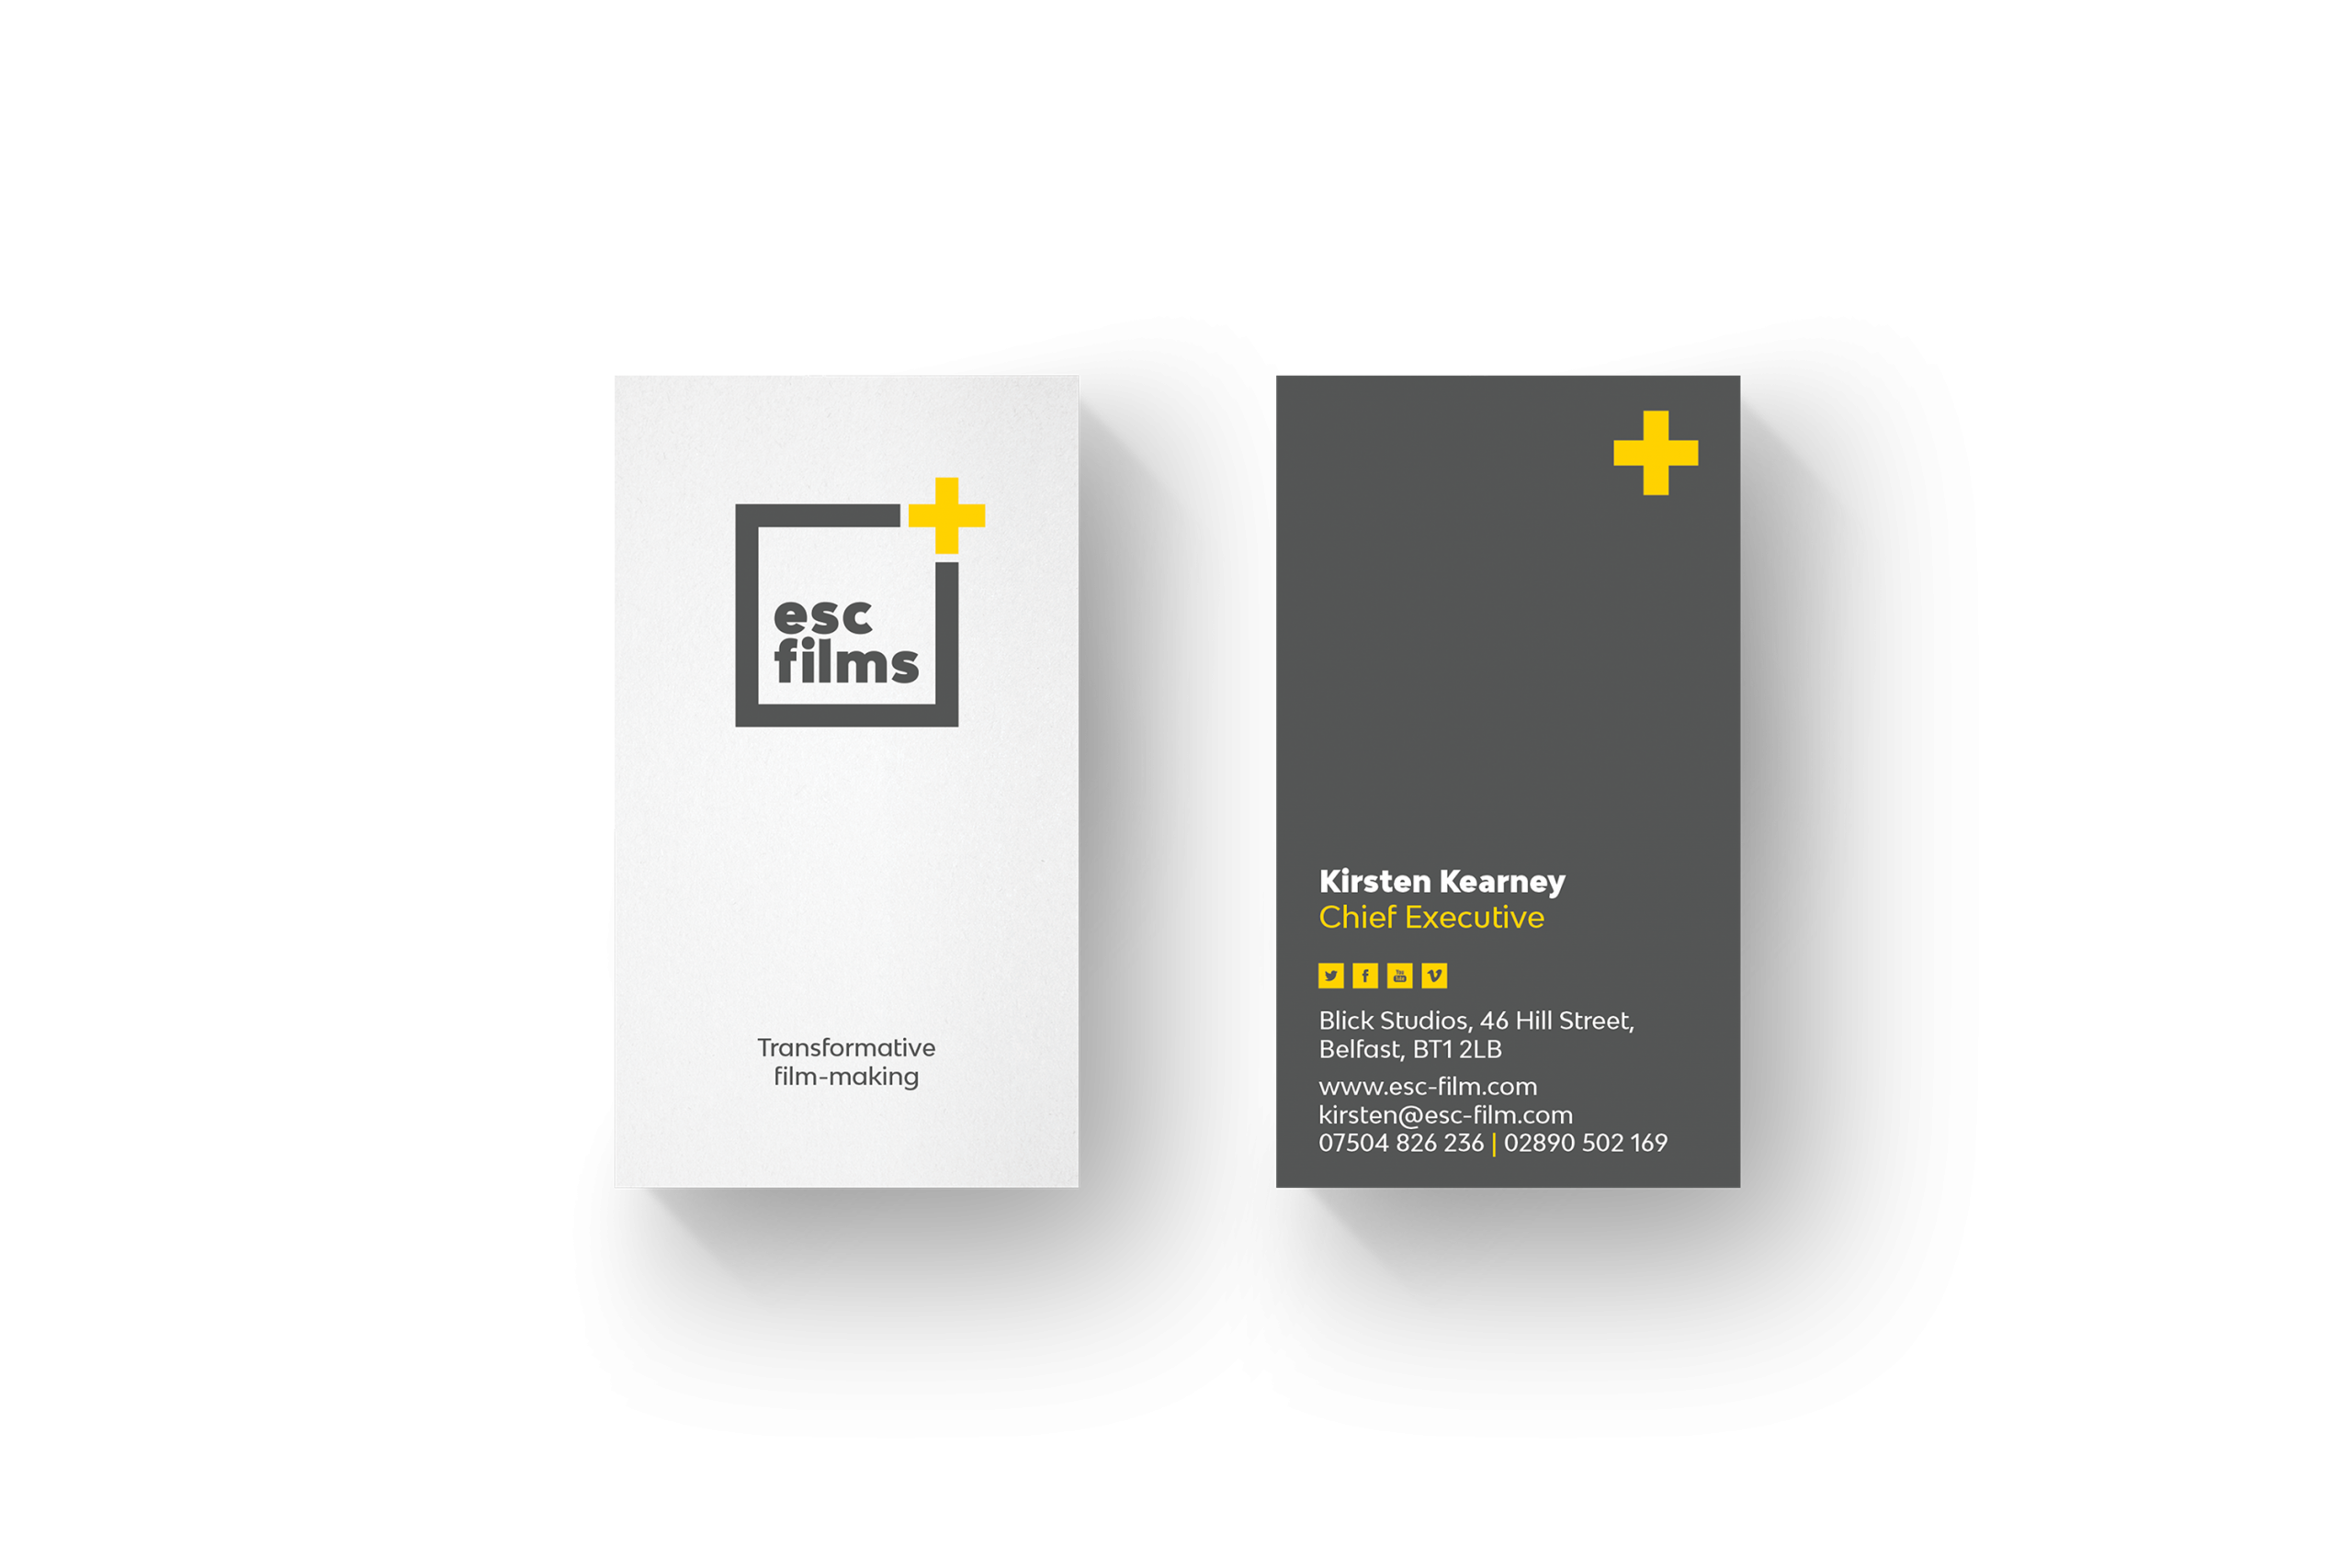 one white one grey business card with esc films logo and details